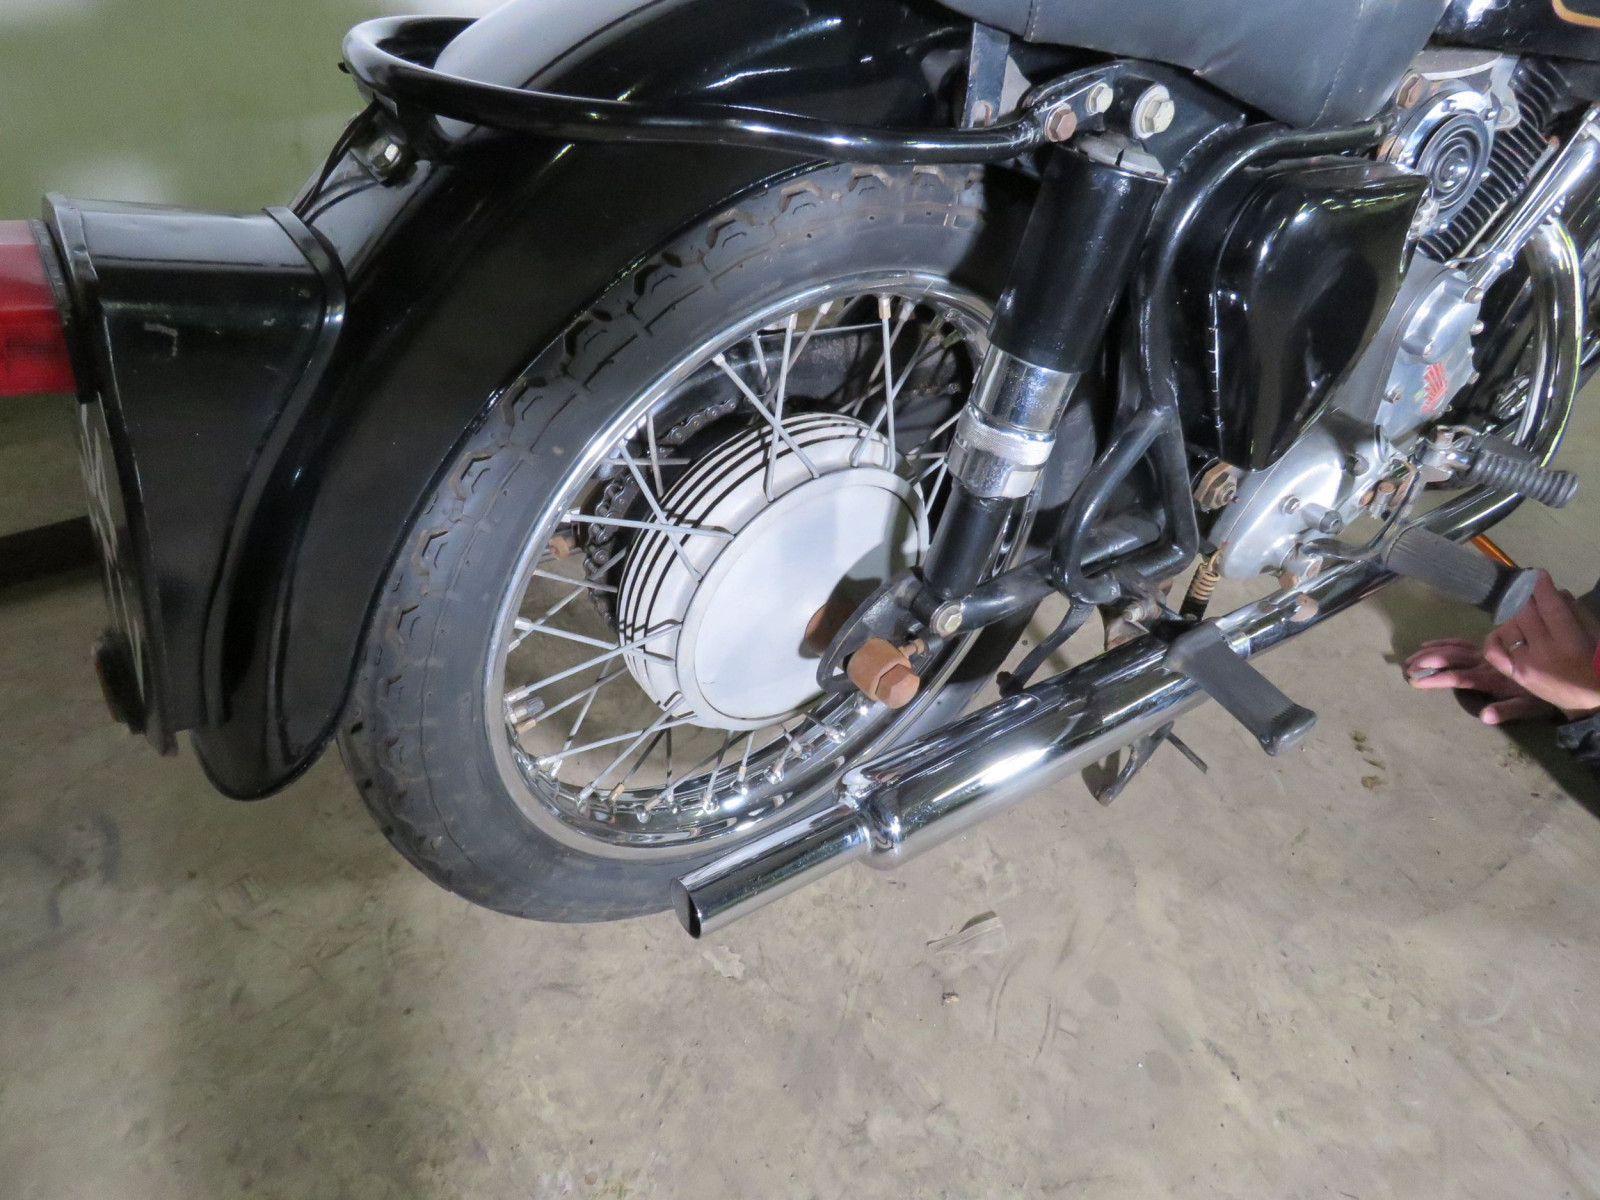 1959 Panther Model 120 Motorcycle - Image 10